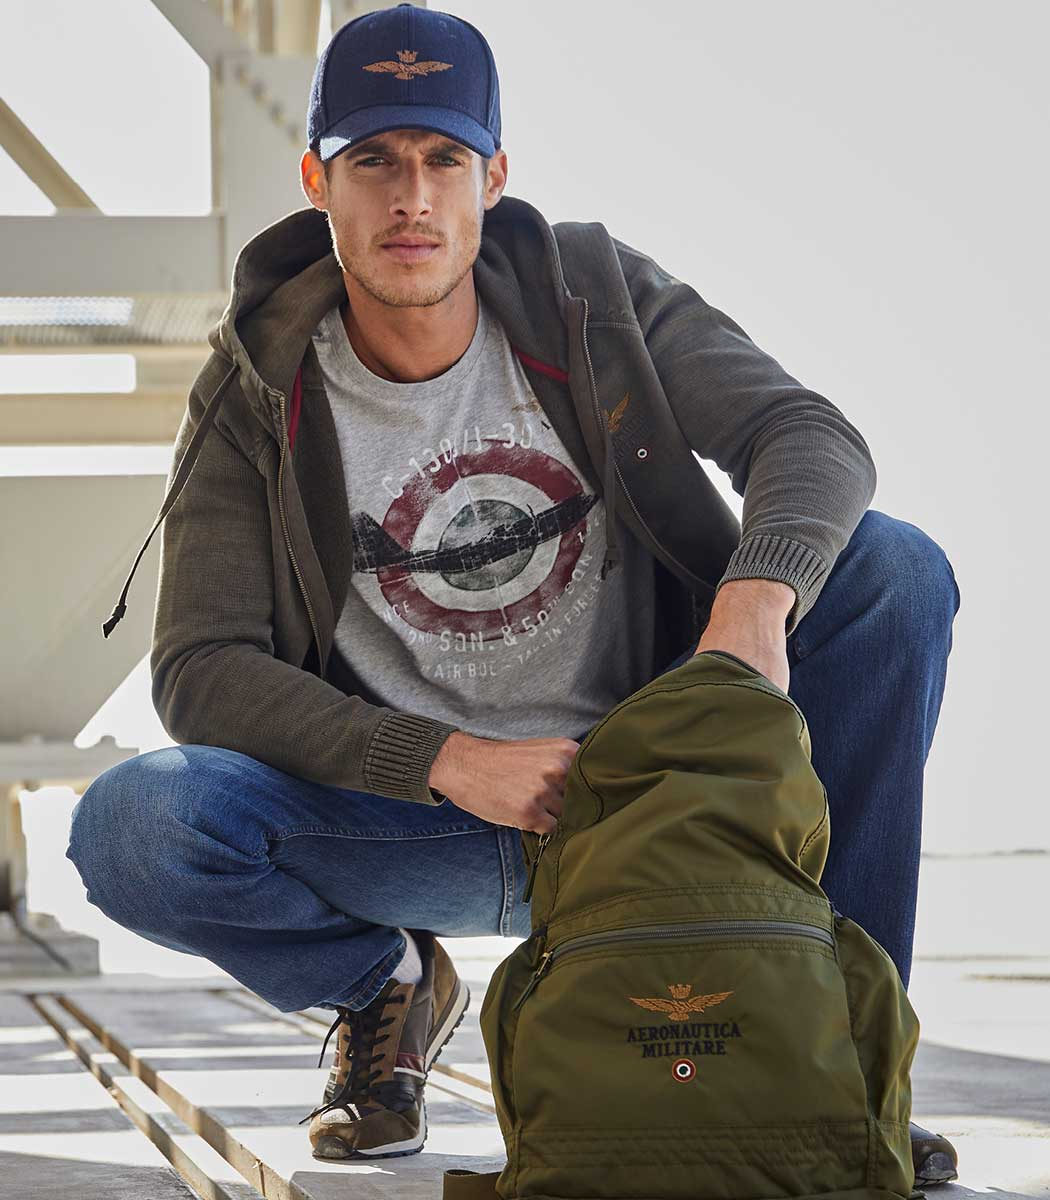 Aeronautica Militare AW18 collection at Hoopers